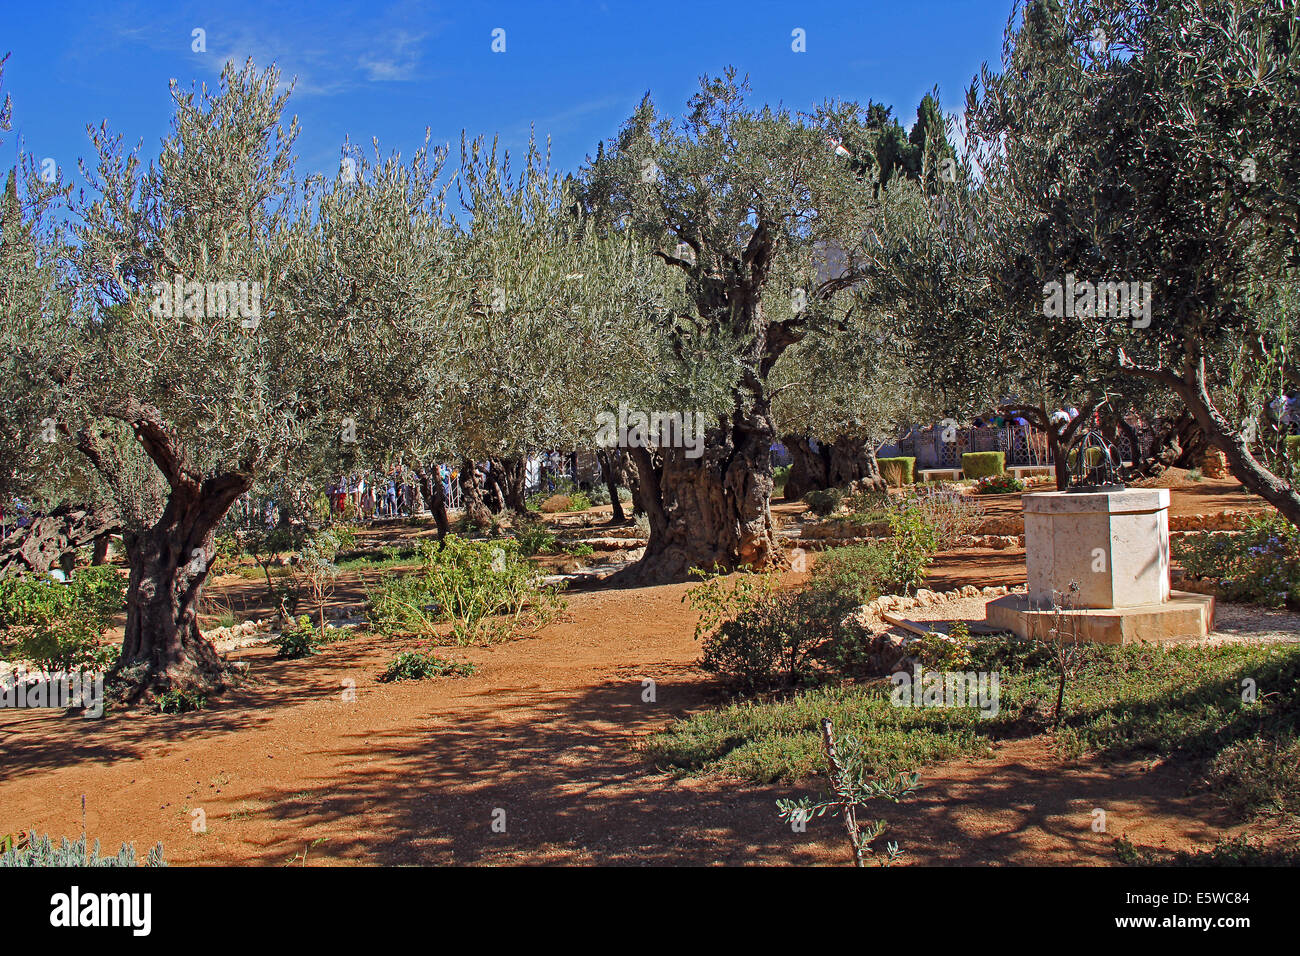 Olive trees within the Garden of Gethsemane which means oil press in ...